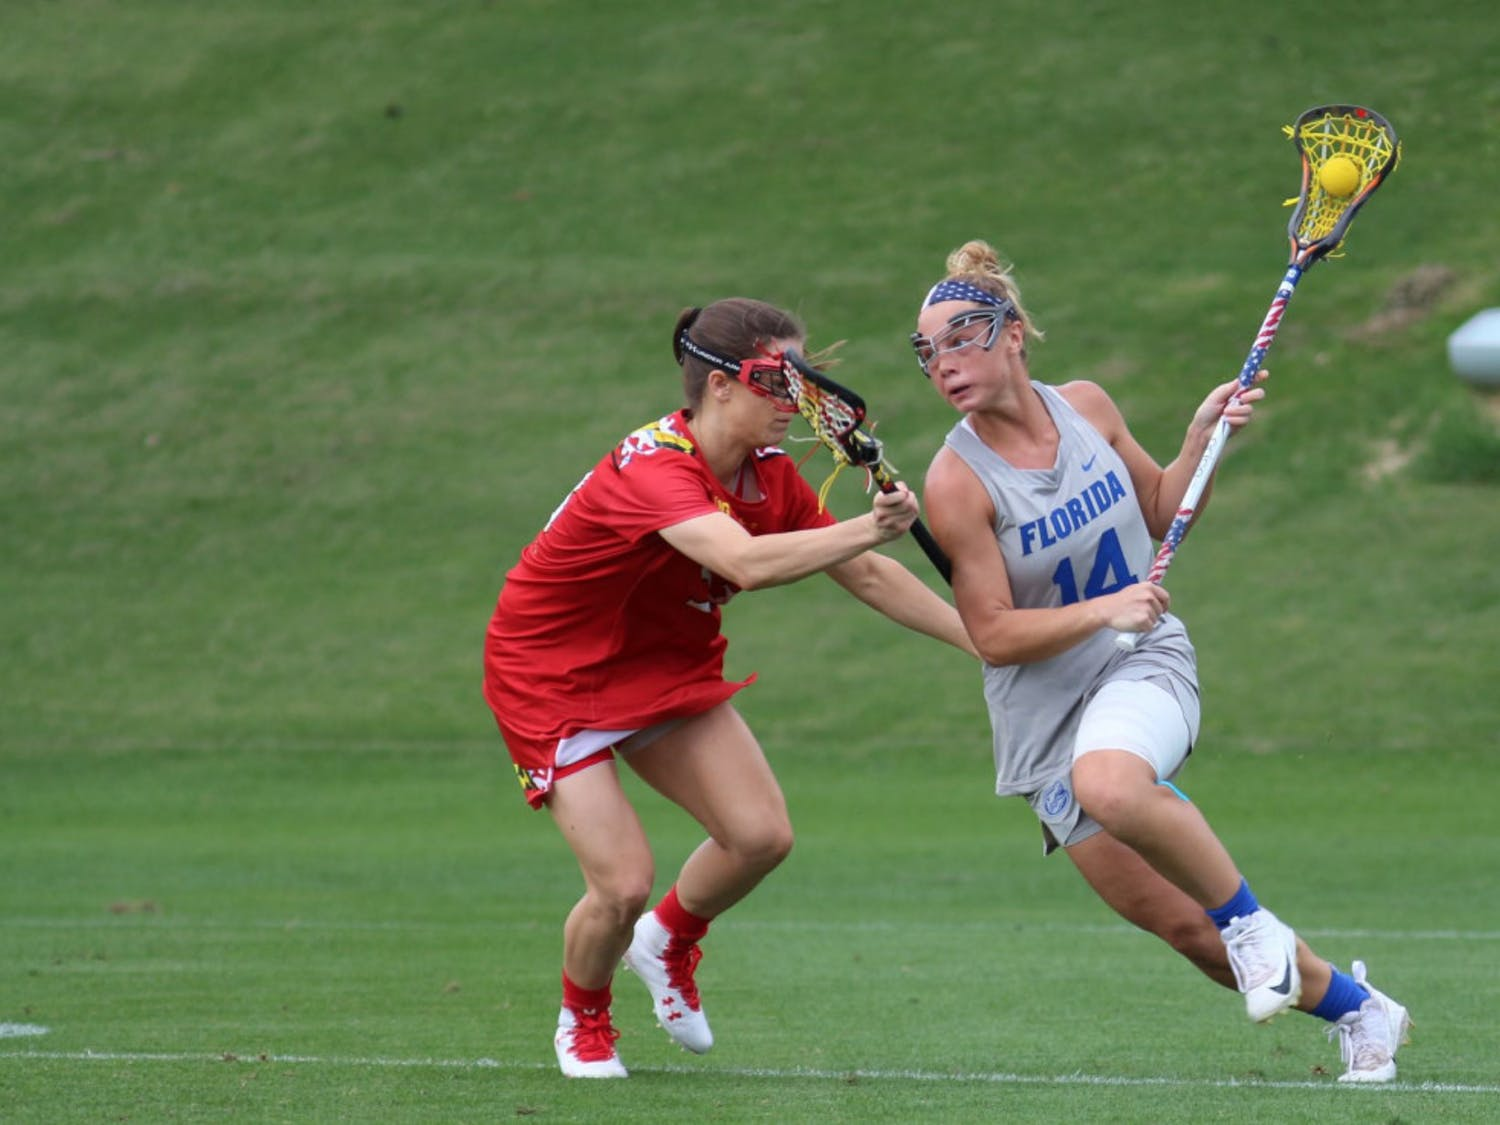 Attackers Lindsey Ronbeck (pictured) and Shannon Kavanagh and midfielder Sydney Pirreca each scored three goals against Princeton. But the rest of the team only scored two goals in a 13-11 loss to the Princeton at Donald R. Dizney Stadium.